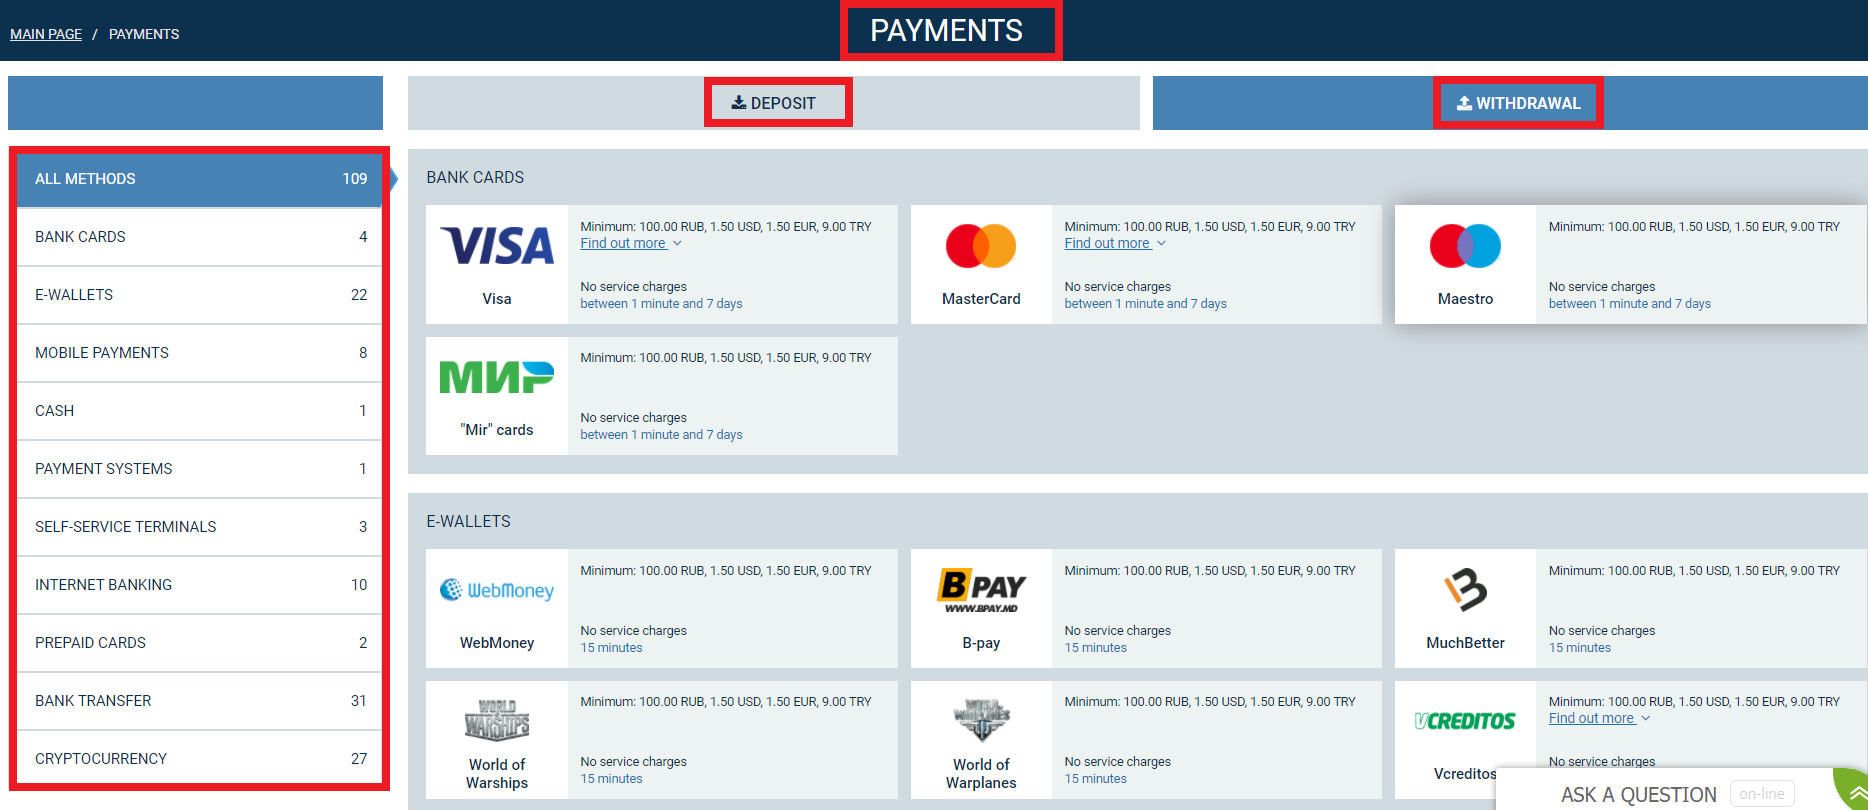 Payments and withdrawals 1xBet